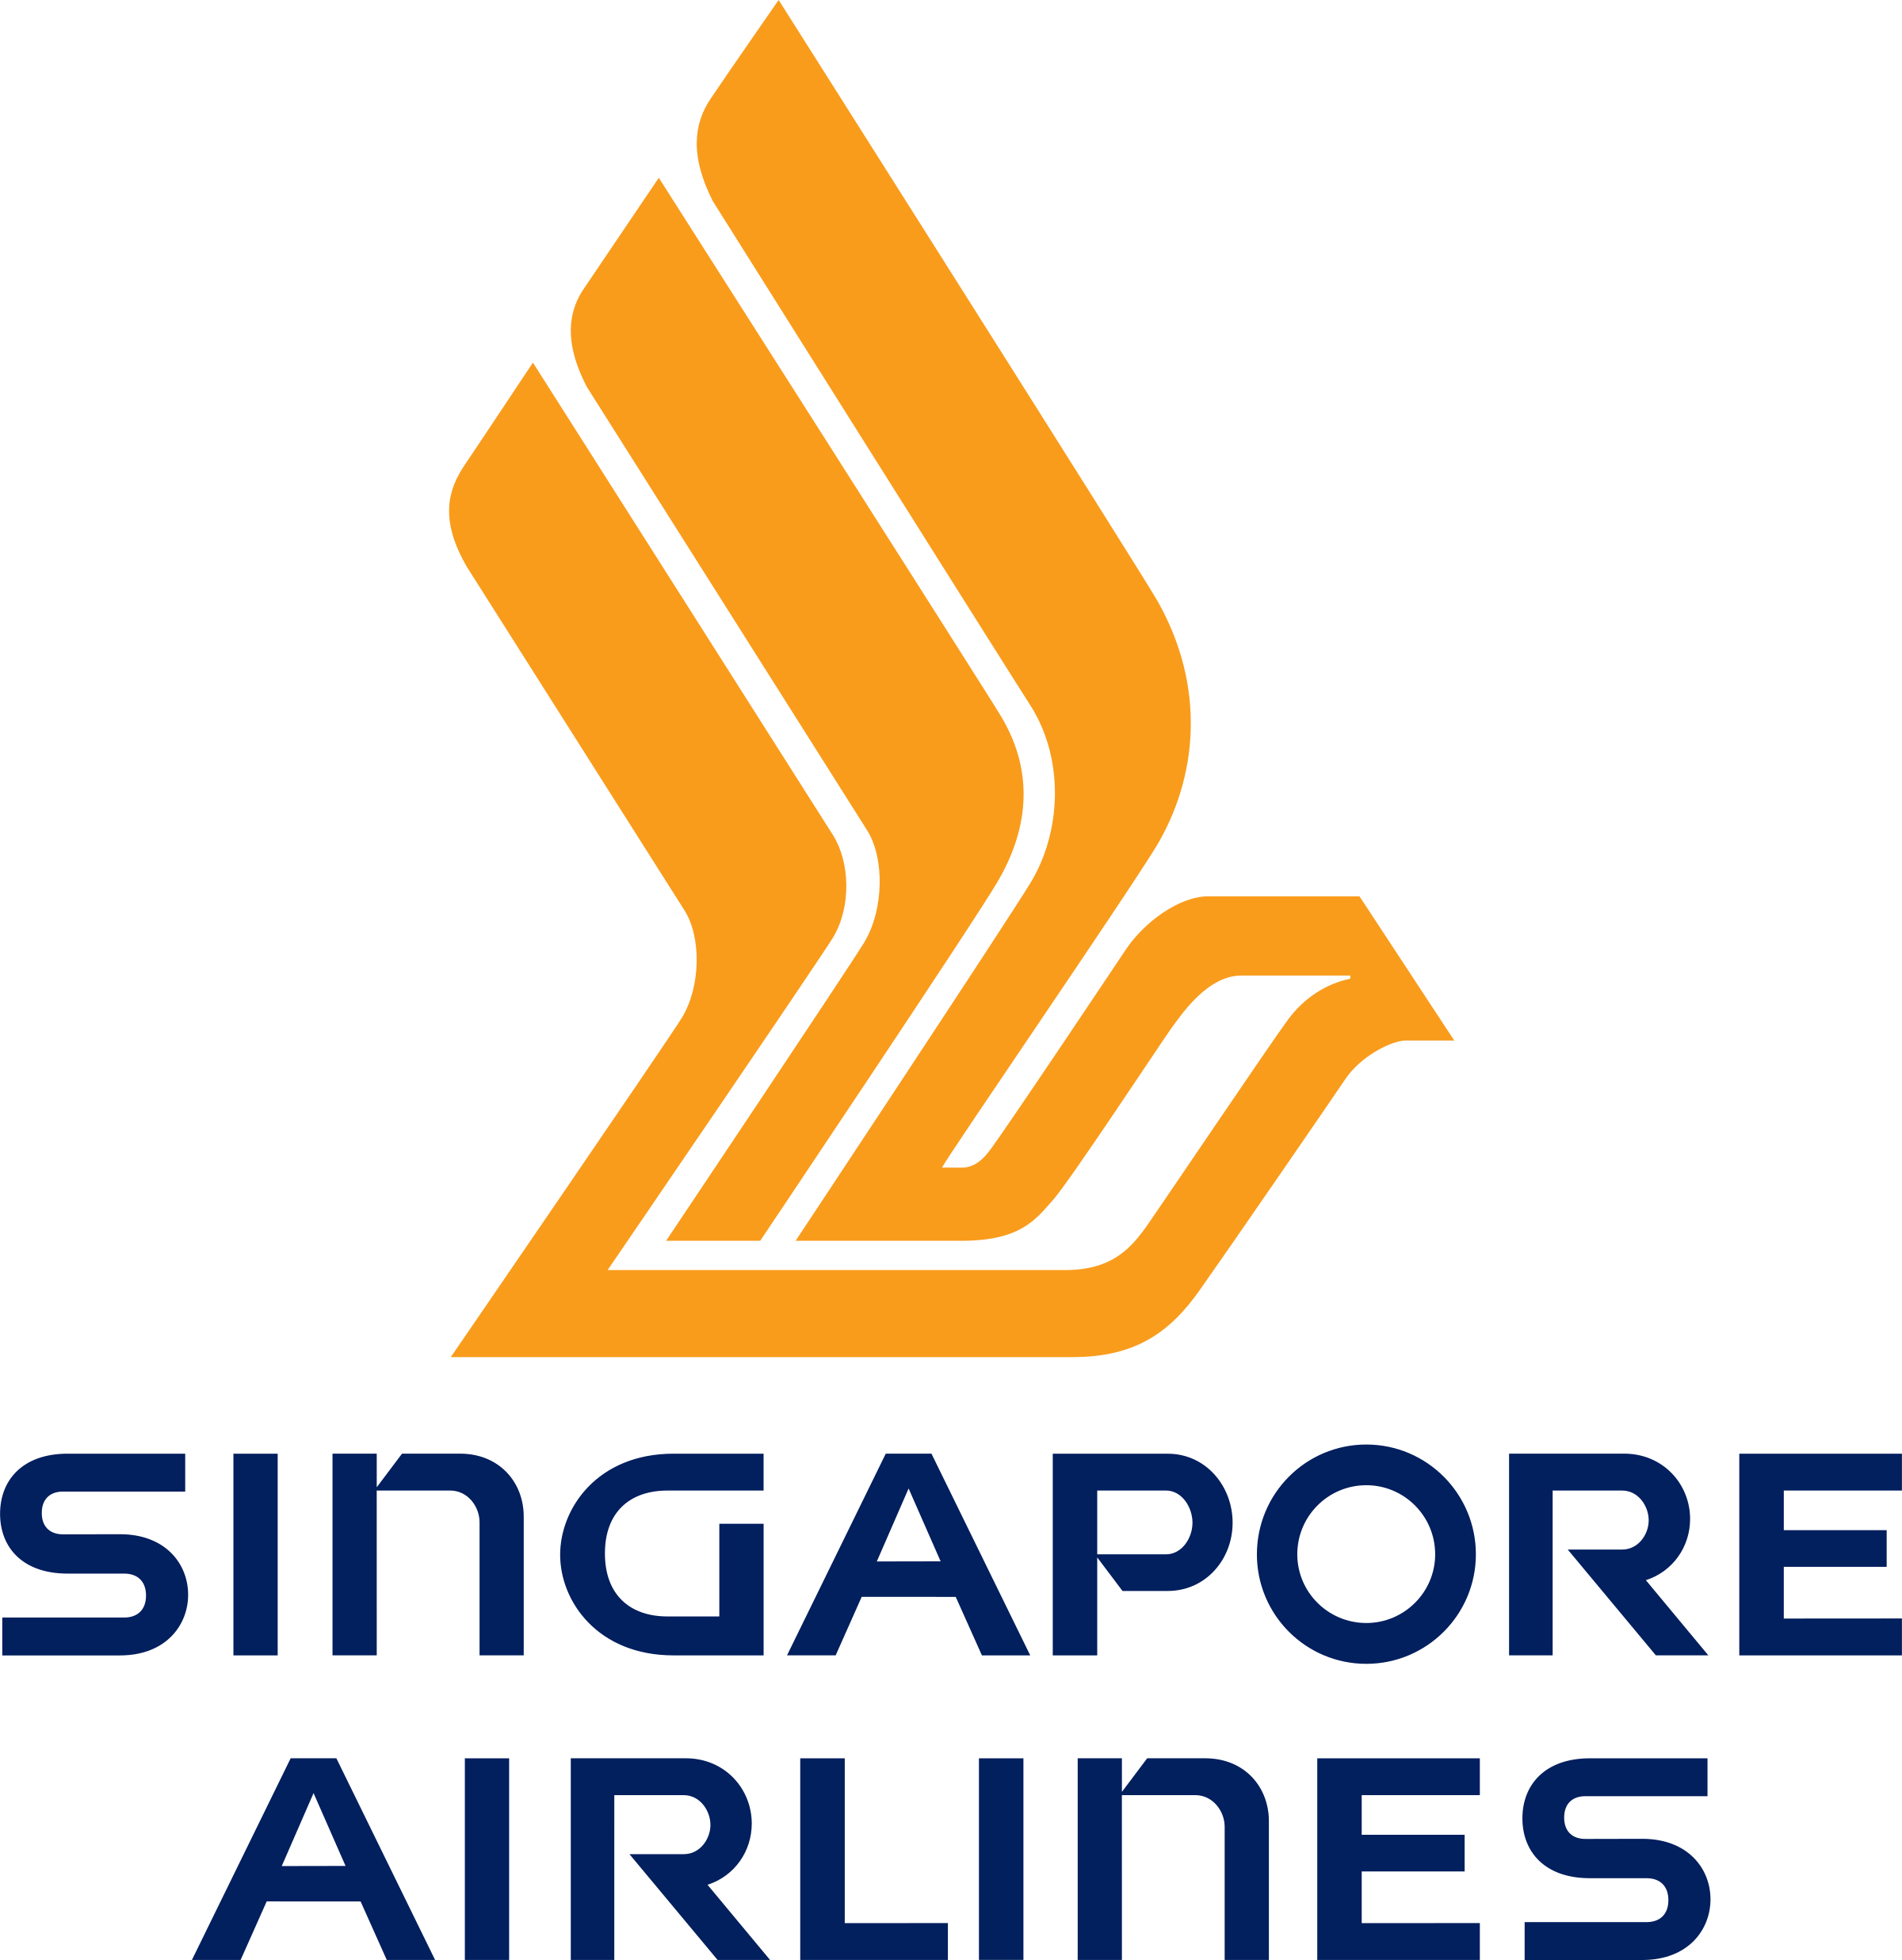 Singapore Airlines Logo Png Transparent Svg Vector Freebie Supply